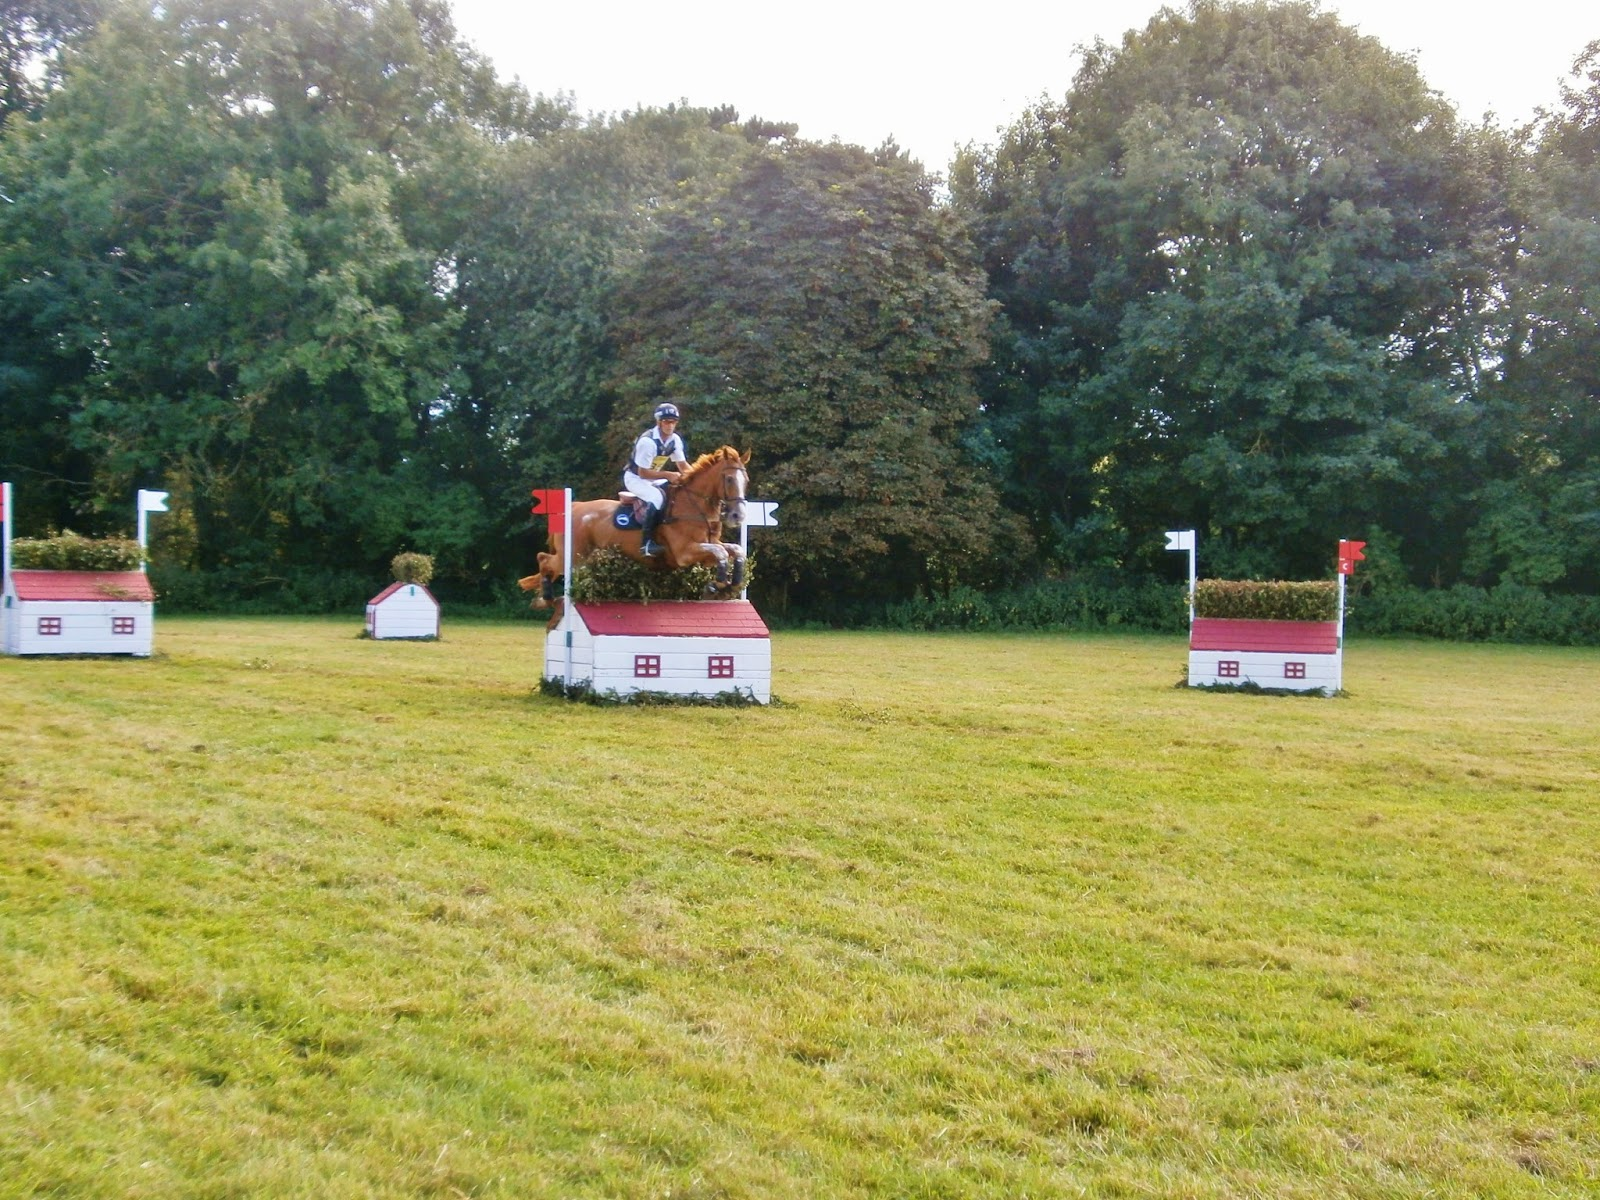 House Cross Country jumps at Gatcombe Festival of Eventing